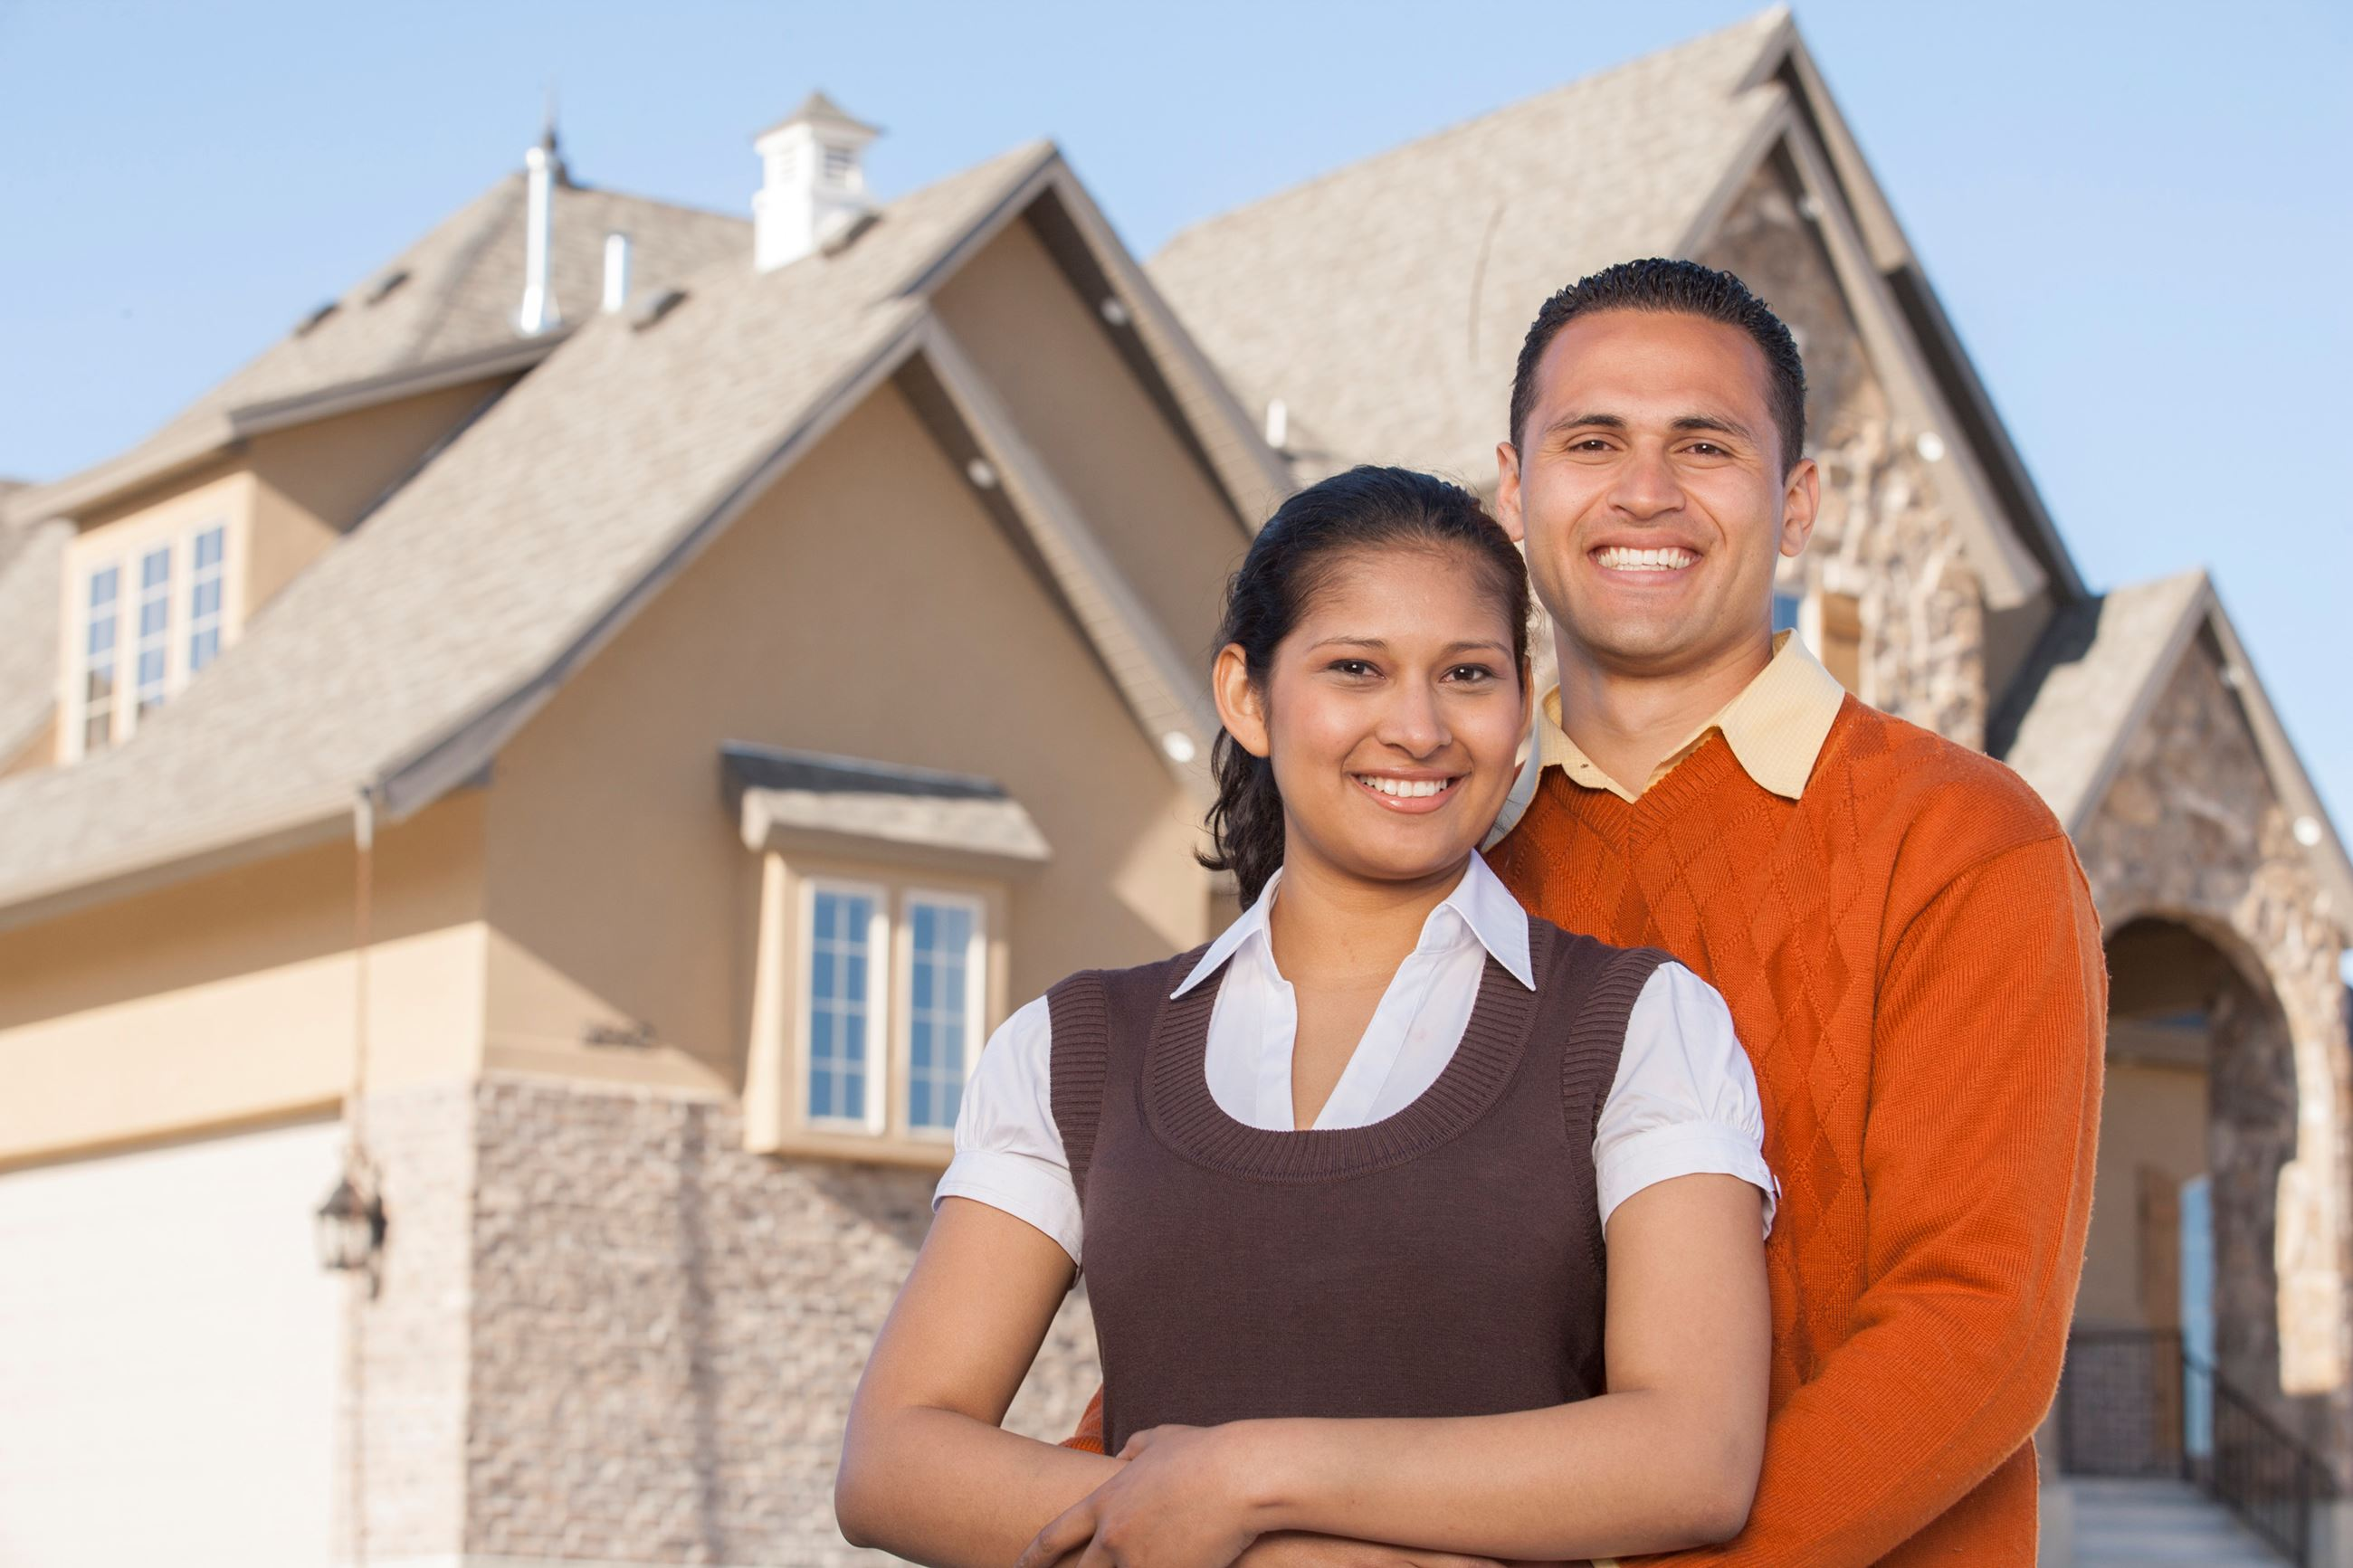 couple-with-new-home_rFgxHxN0Hj